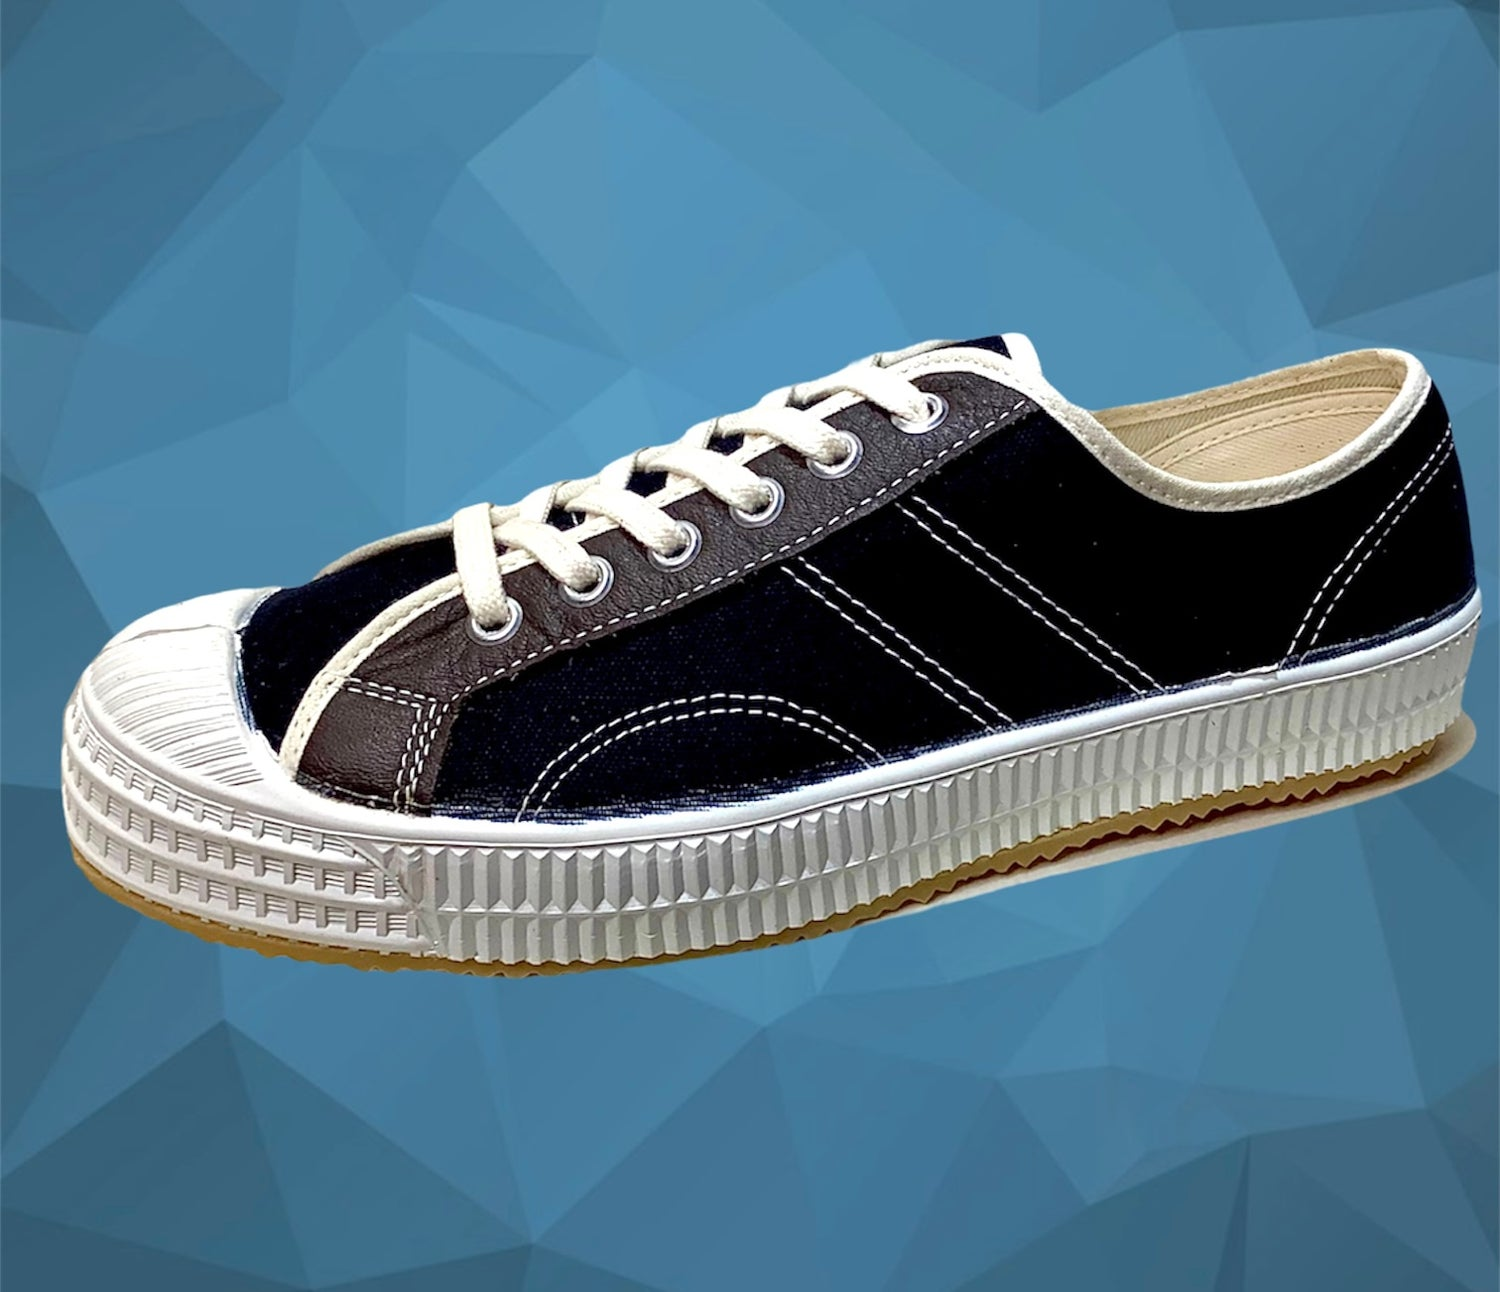 Image of VEGANCRAFT vintage lo top black canvas sneaker shoes made in Slovakia